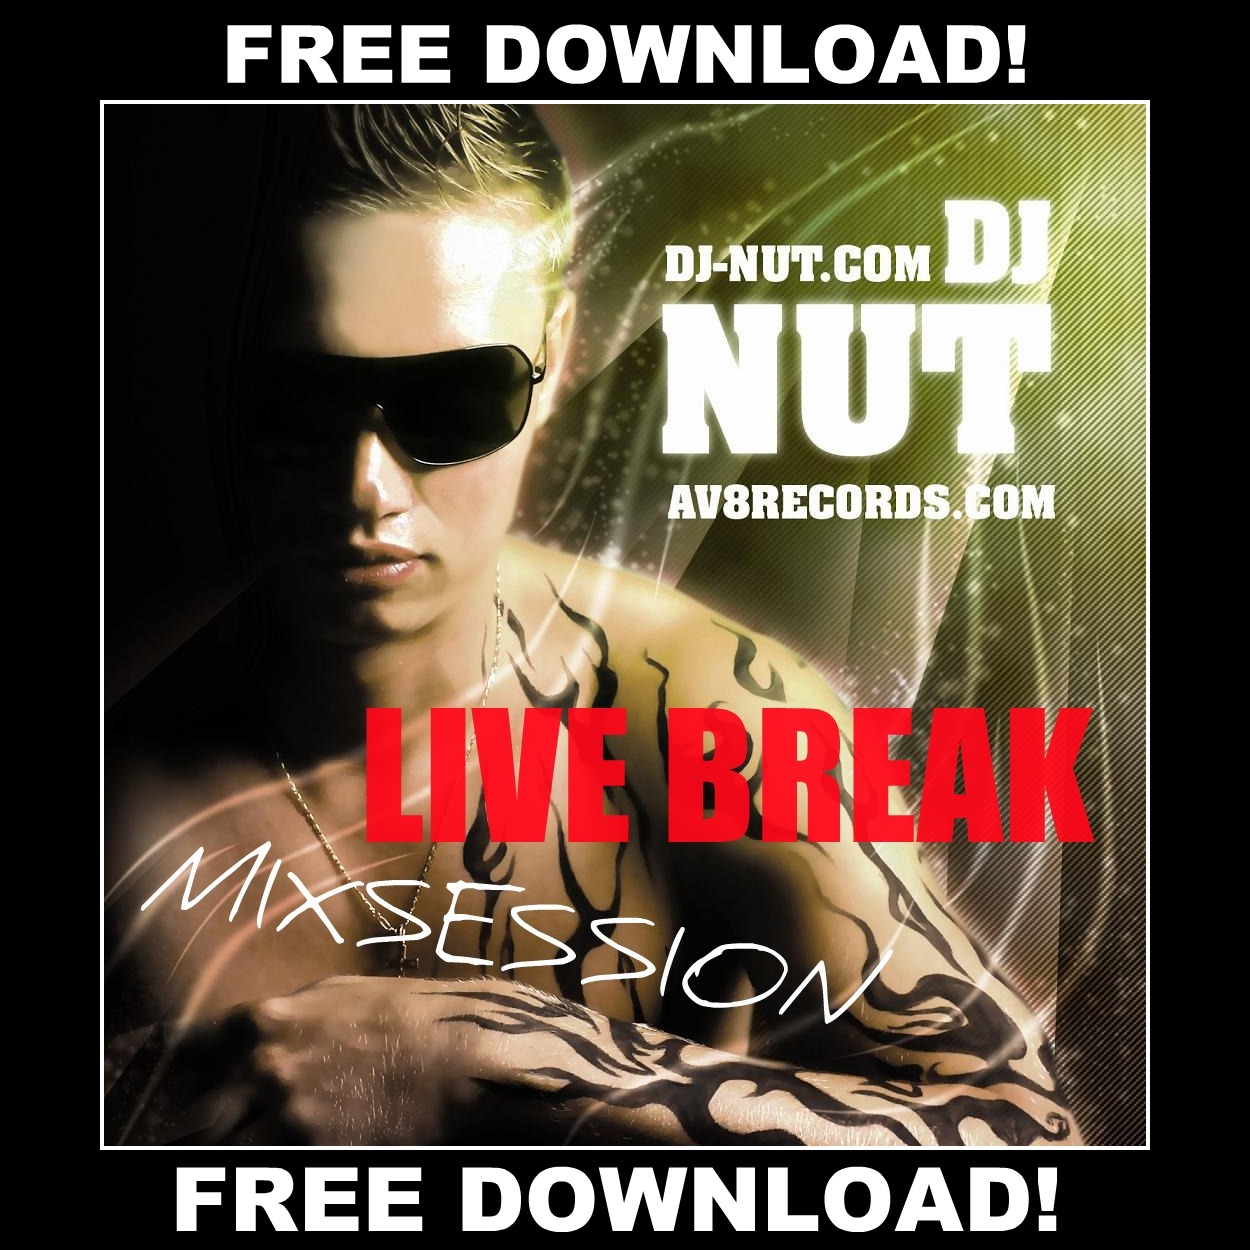 Dj Nut - Live Break MixSession